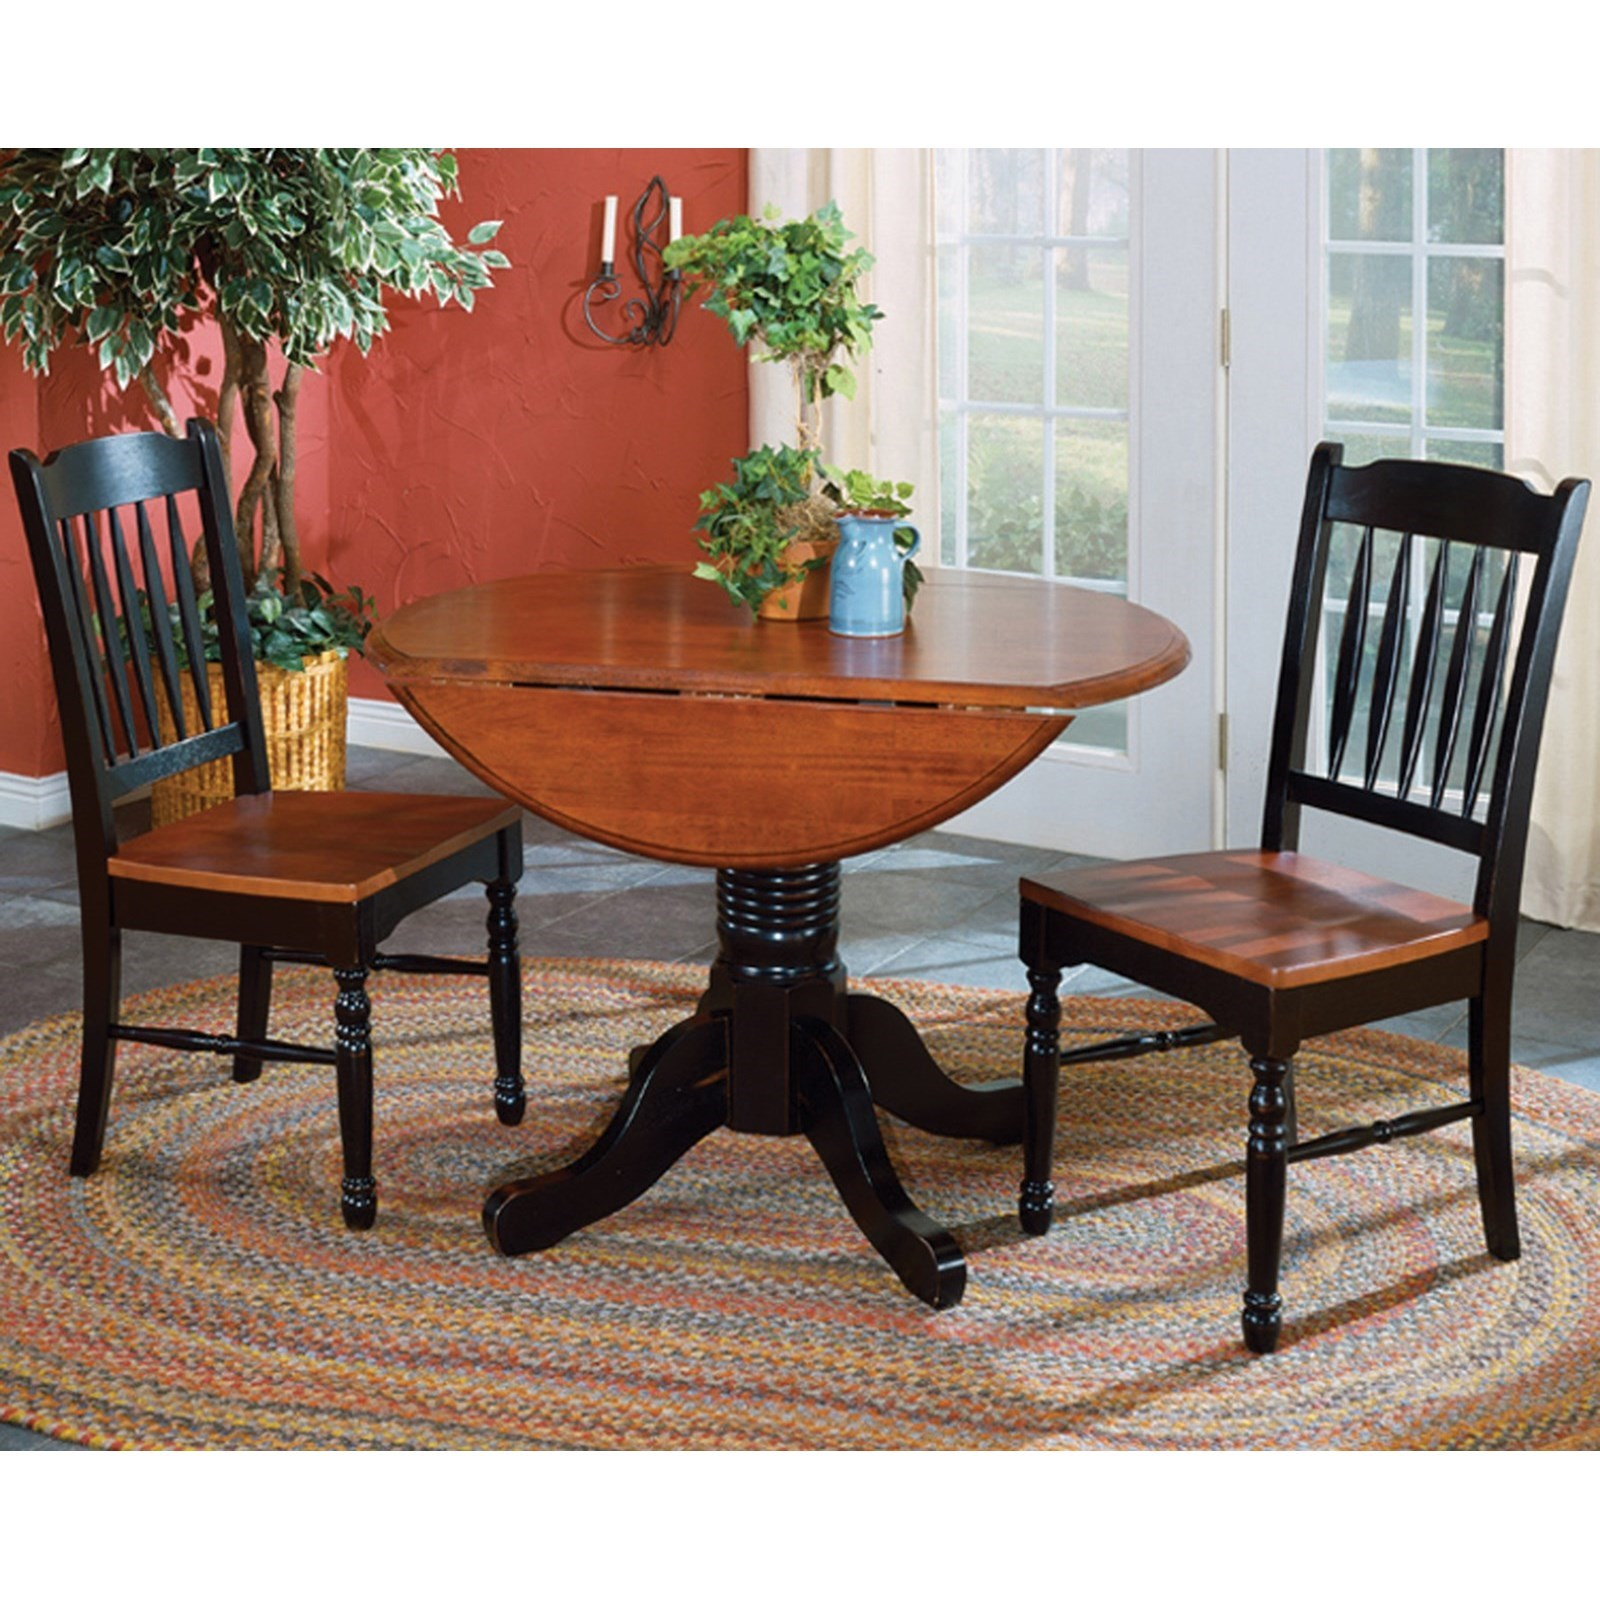 British Isles 3 Piece Dining Set by A-A at Walker's Furniture